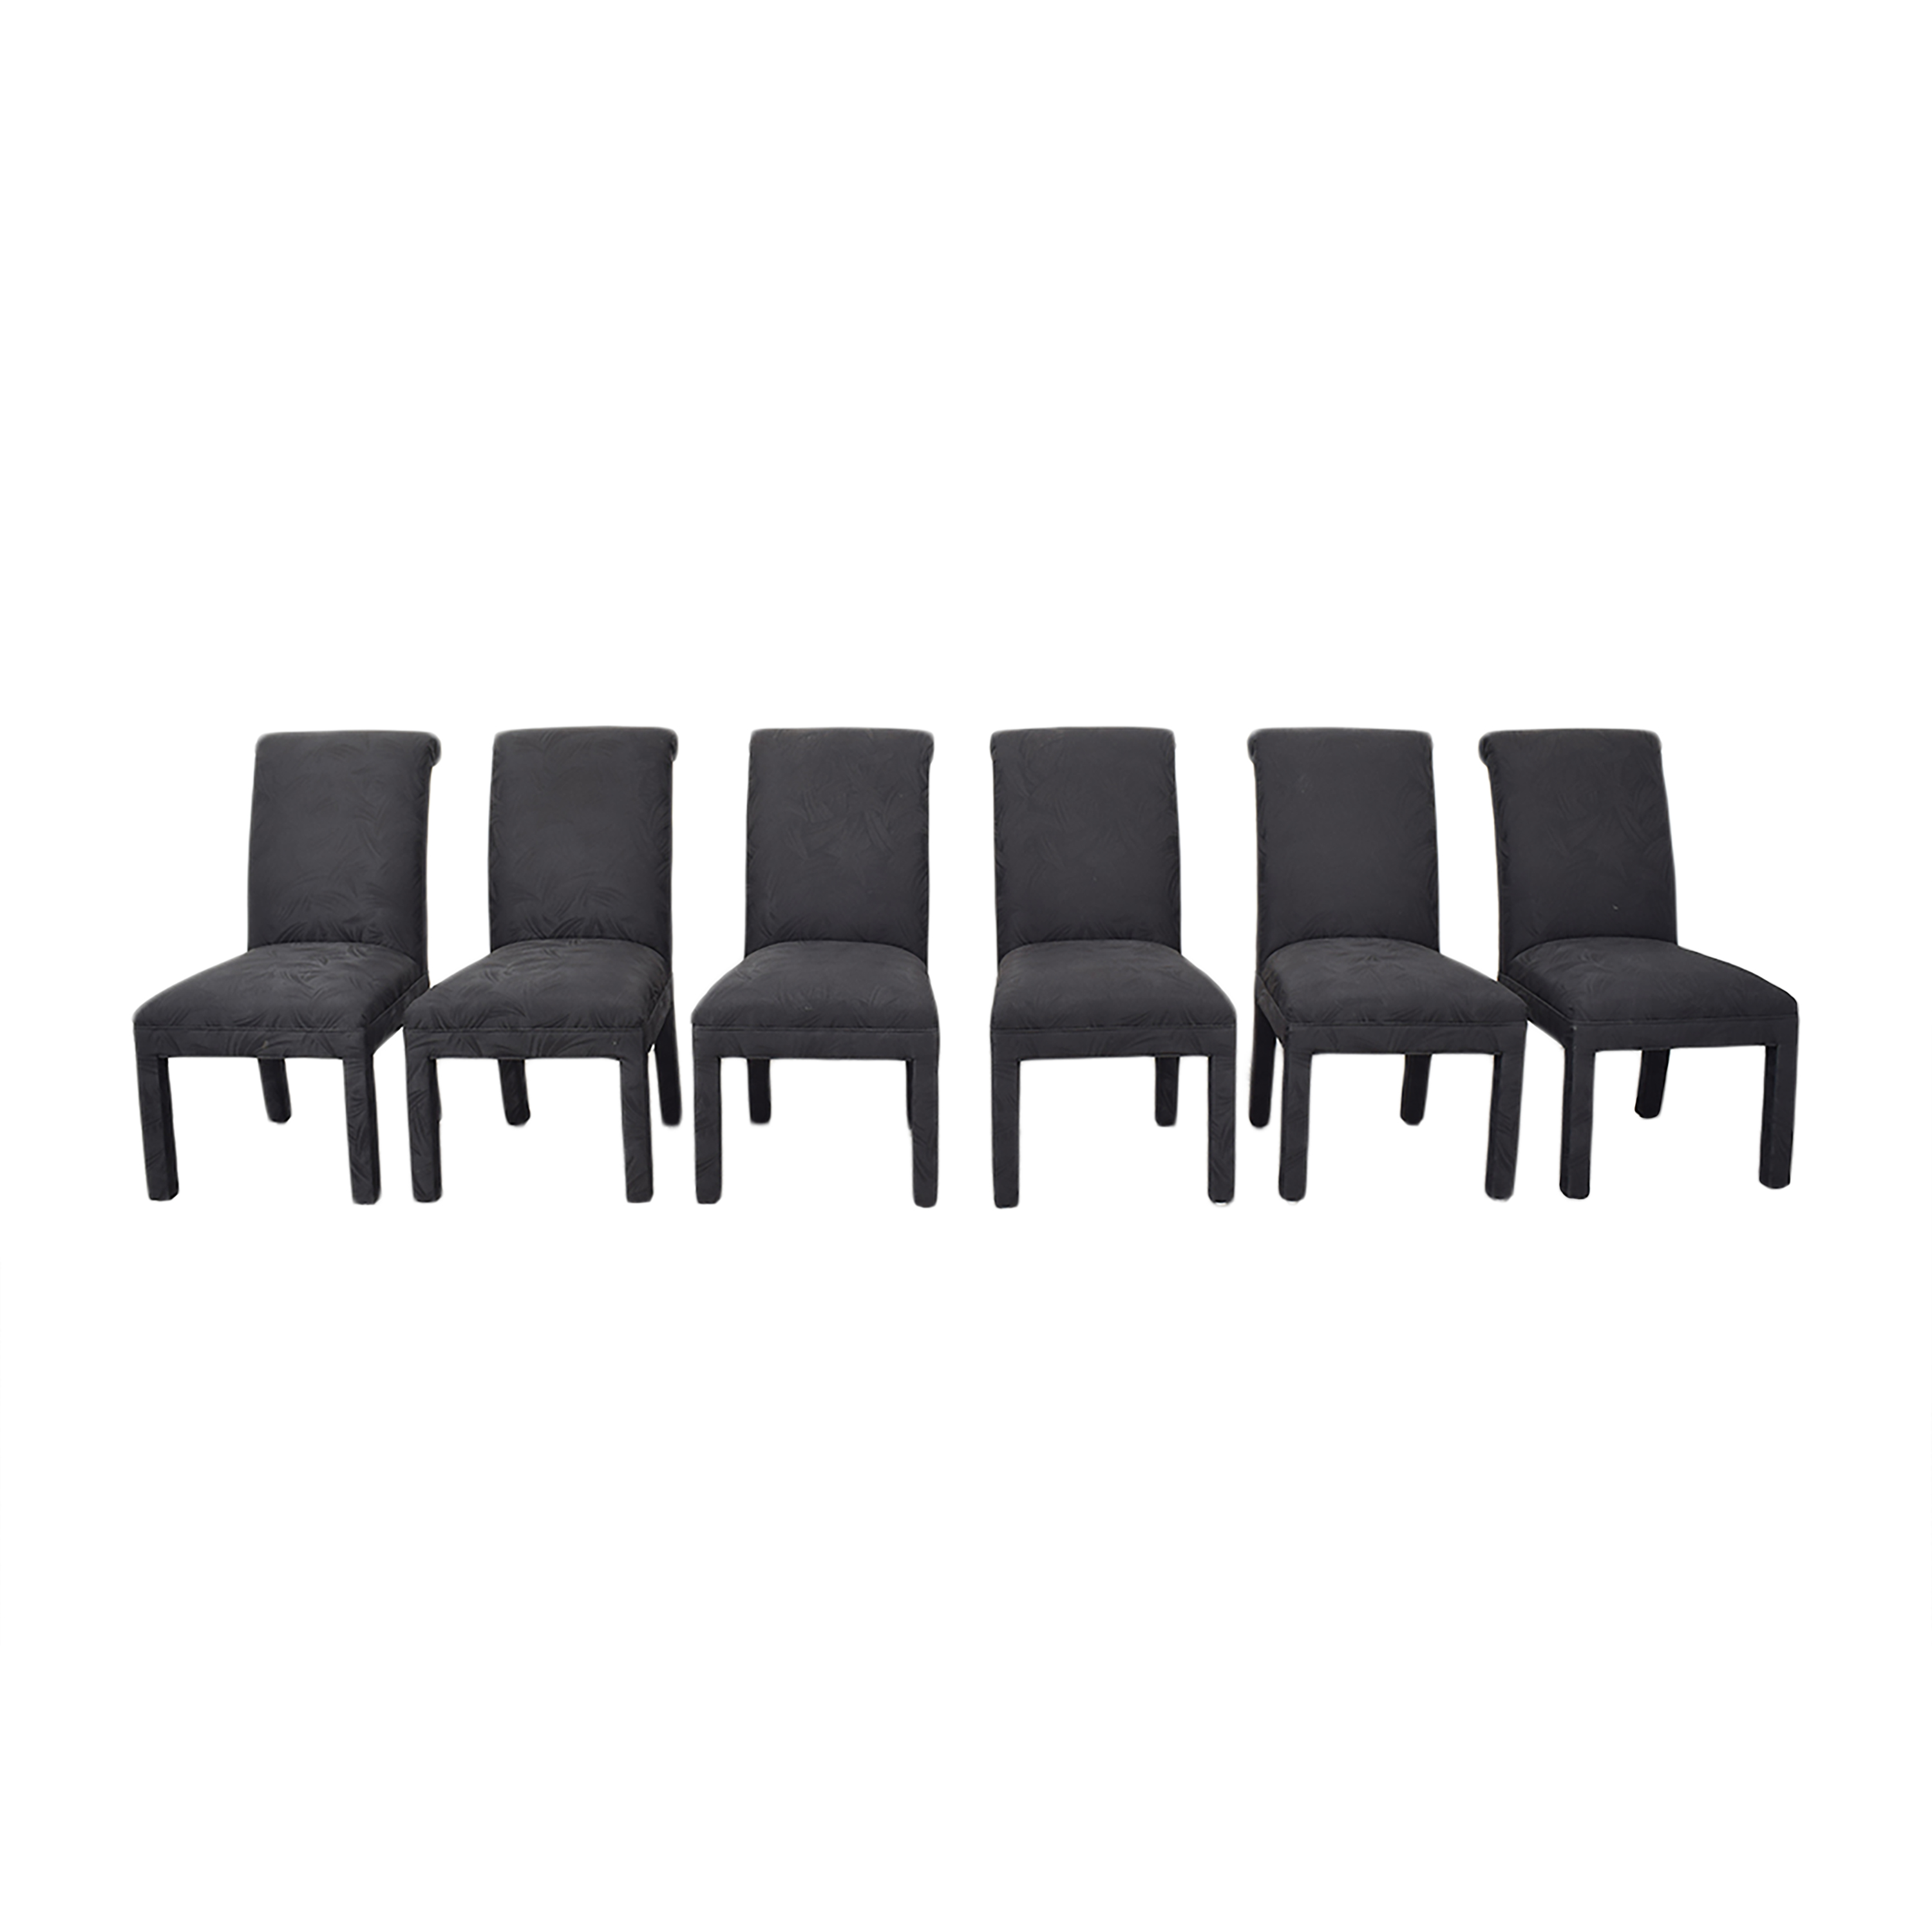 Designmaster Furniture Designmaster Furniture Dining Side Chairs for sale